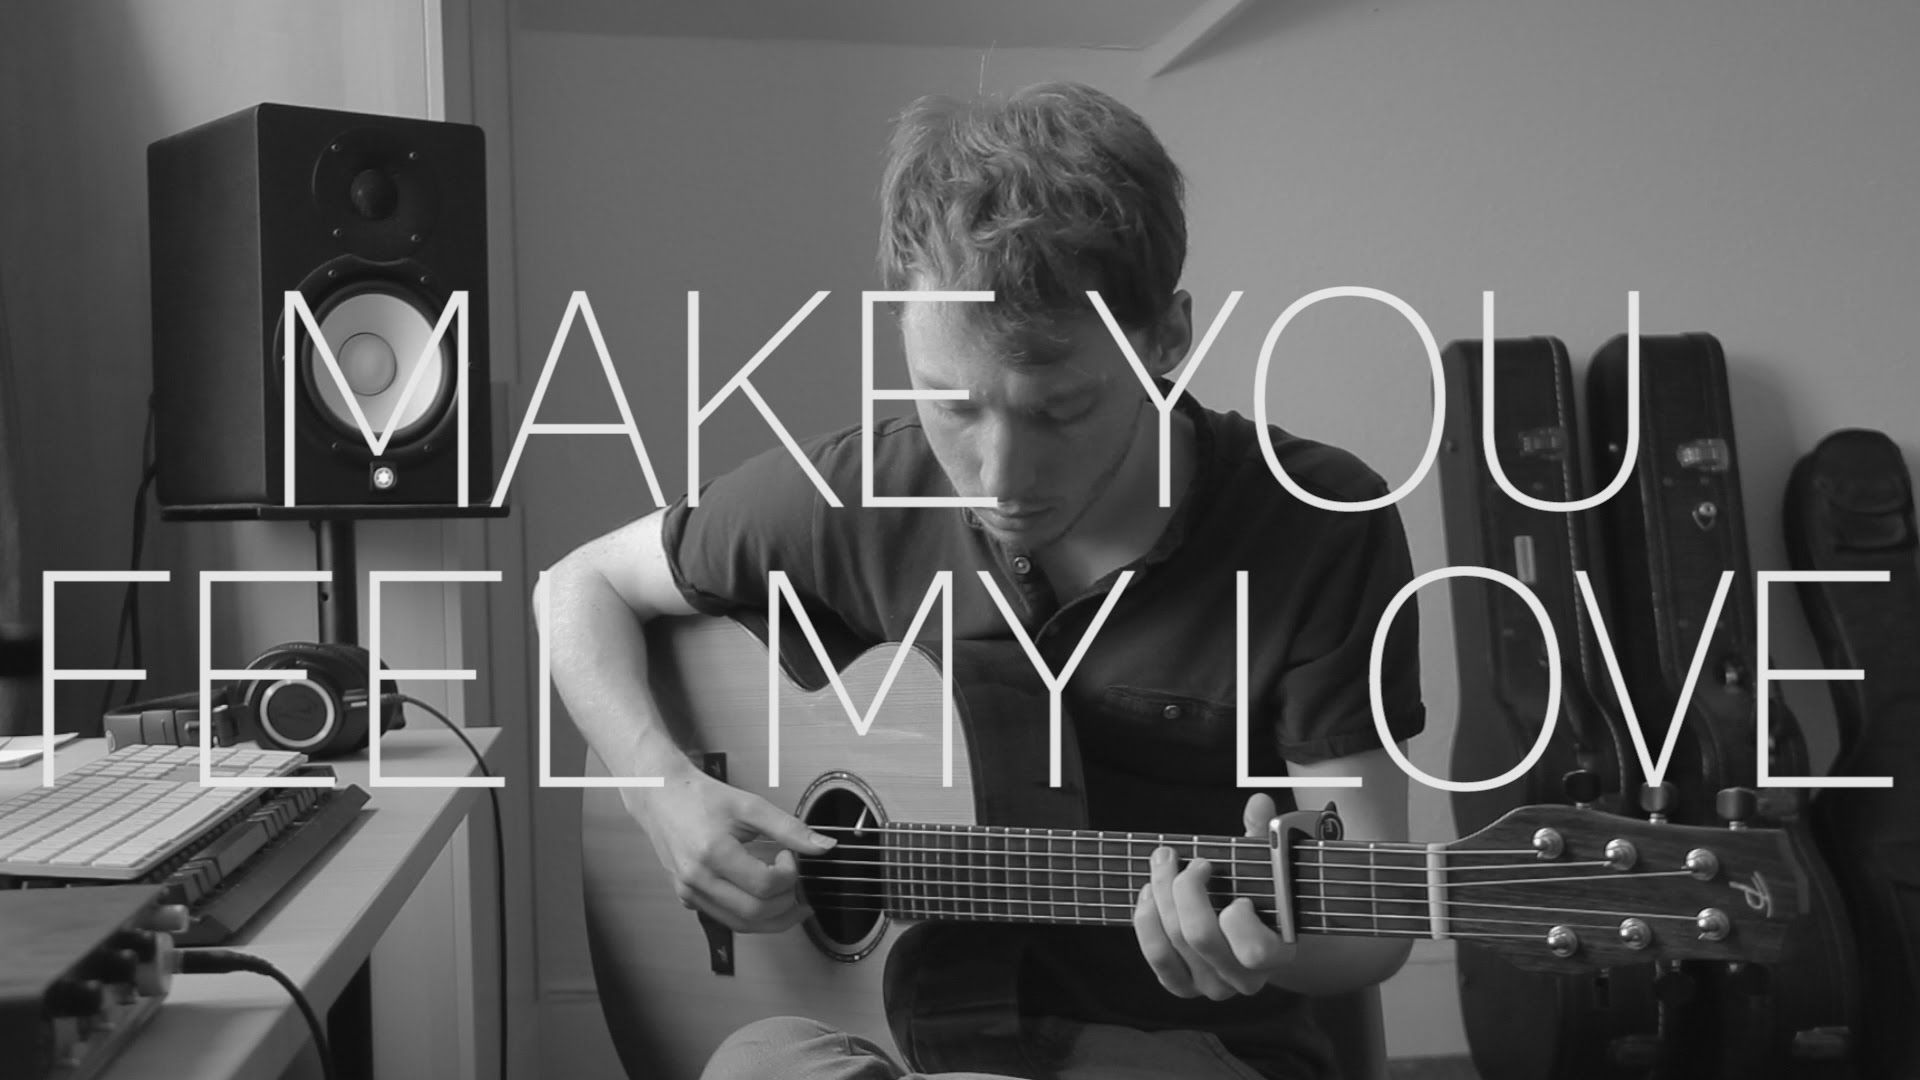 Adele Bob Dylan Make You Feel My Love Fingerstyle Guitar